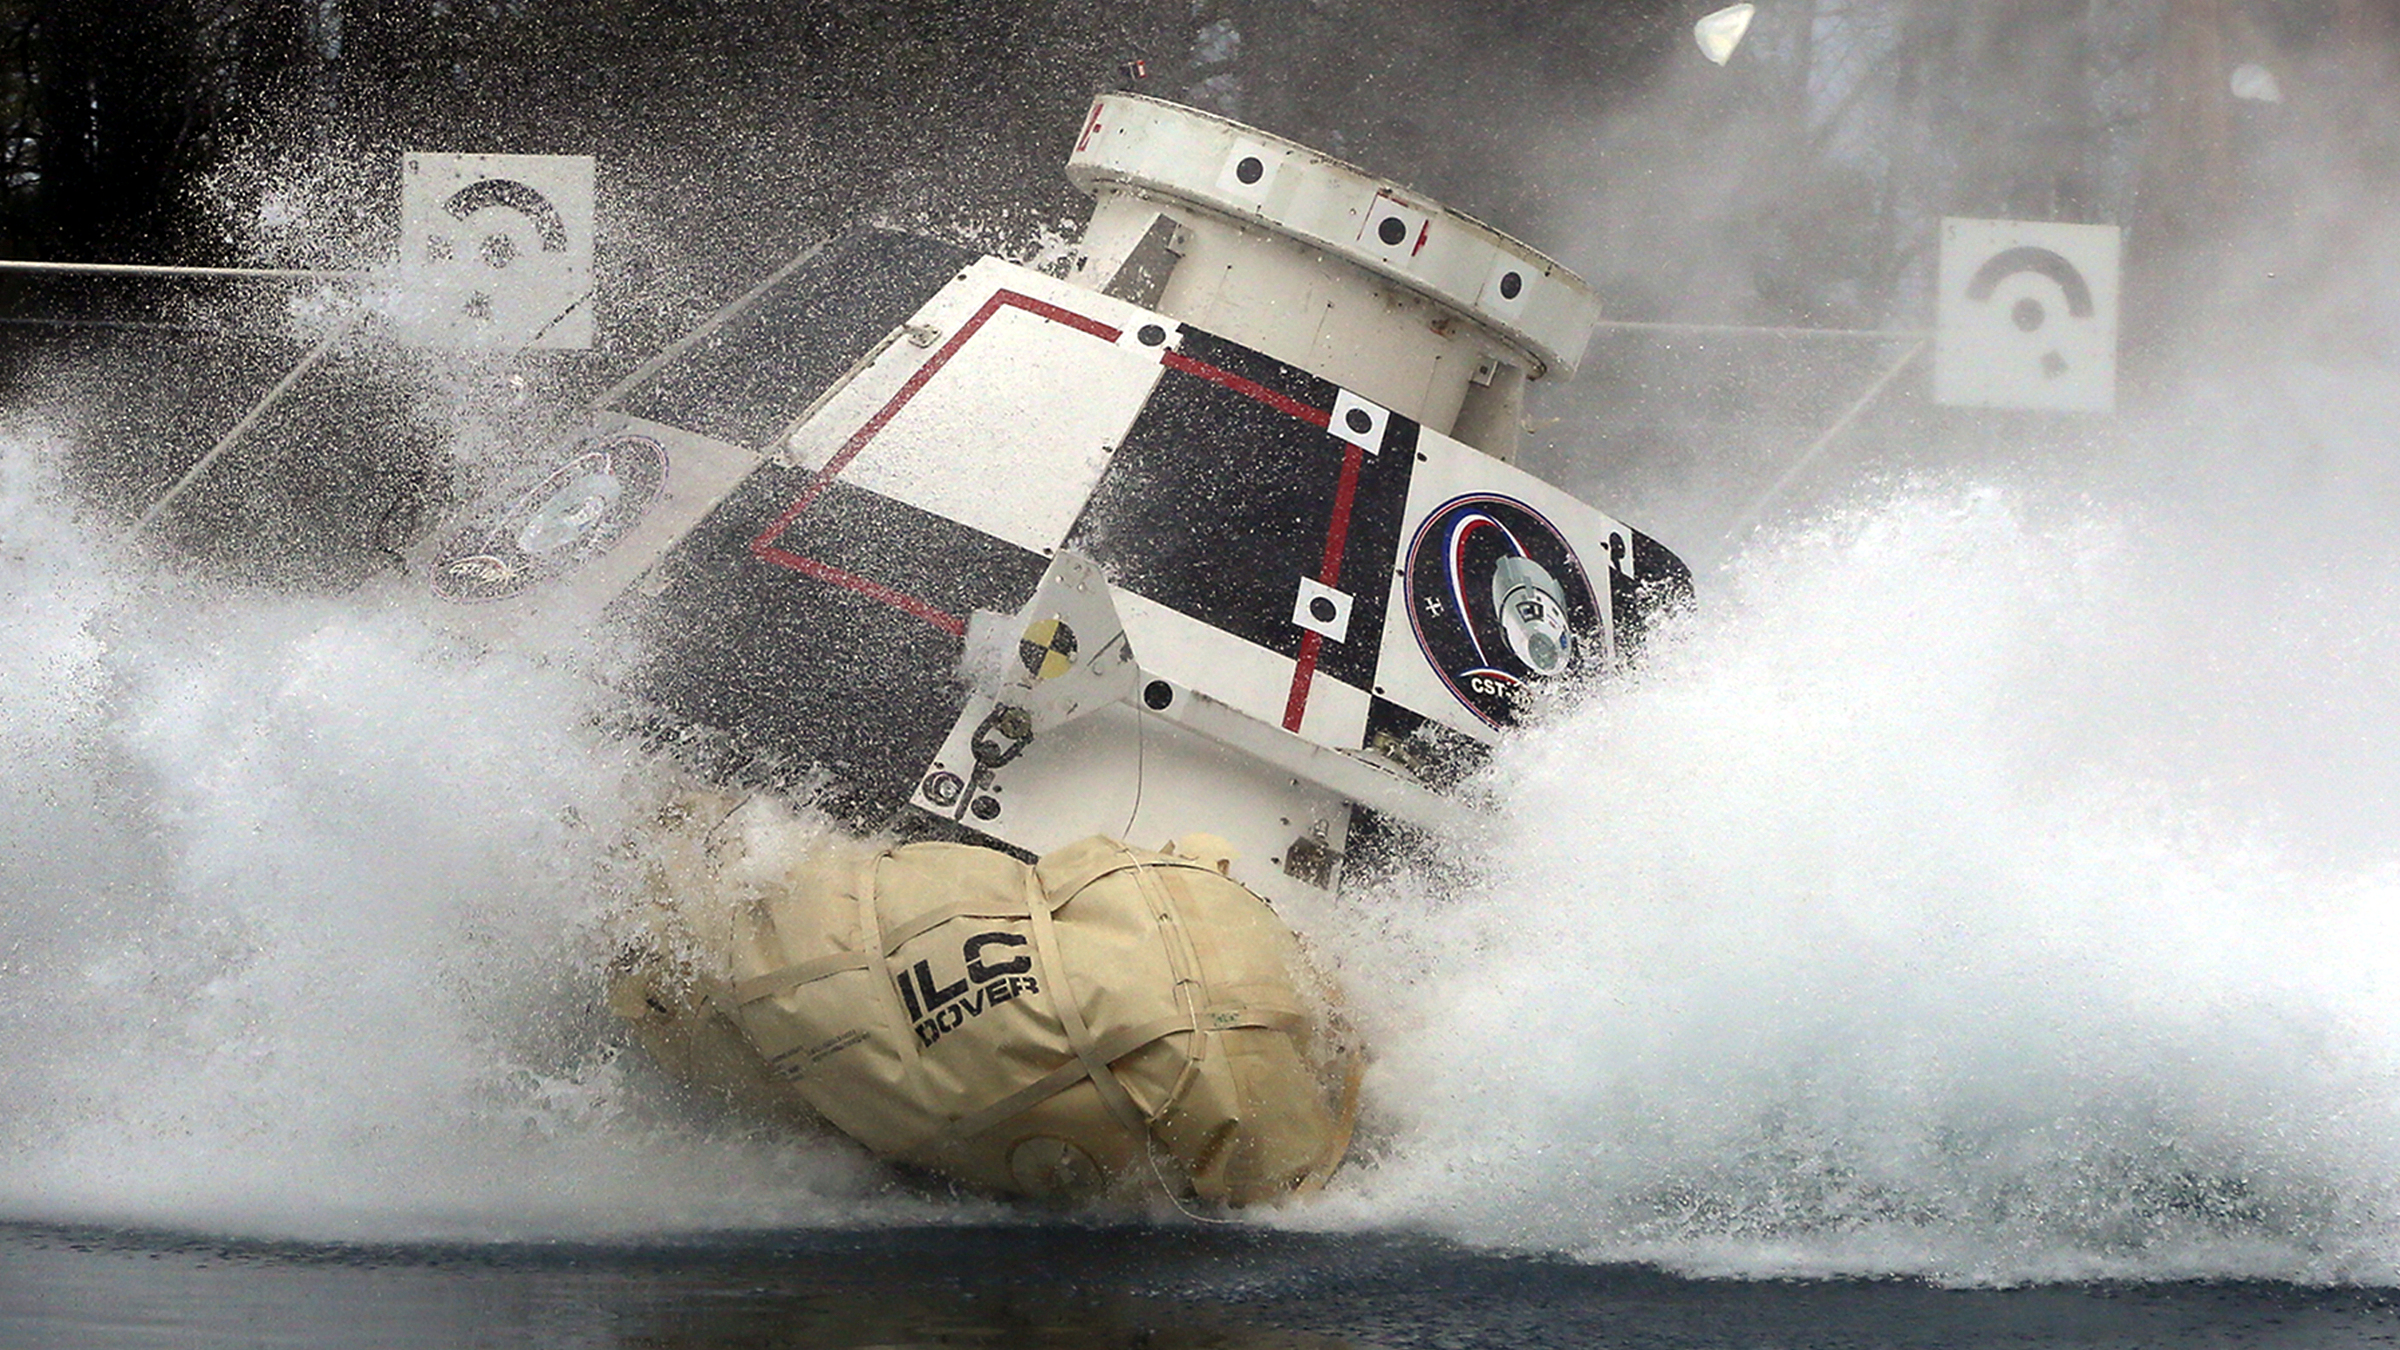 In this Feb. 9, 2016 photo made available by NASA, a mockup of Boeing's CST-100 Starliner spacecraft, in development in partnership with NASA's Commercial Crew Program, splashes into a 20-foot-deep basin at NASA's Langley Research Center in Hampton, Va., during testing of the spacecraft's landing systems design. On Wednesday, July 11, 2018, the U.S. Government Accountability Office said NASA needs a backup plan for getting astronauts to space, given additional delays on the horizon for new commercial crew capsules.